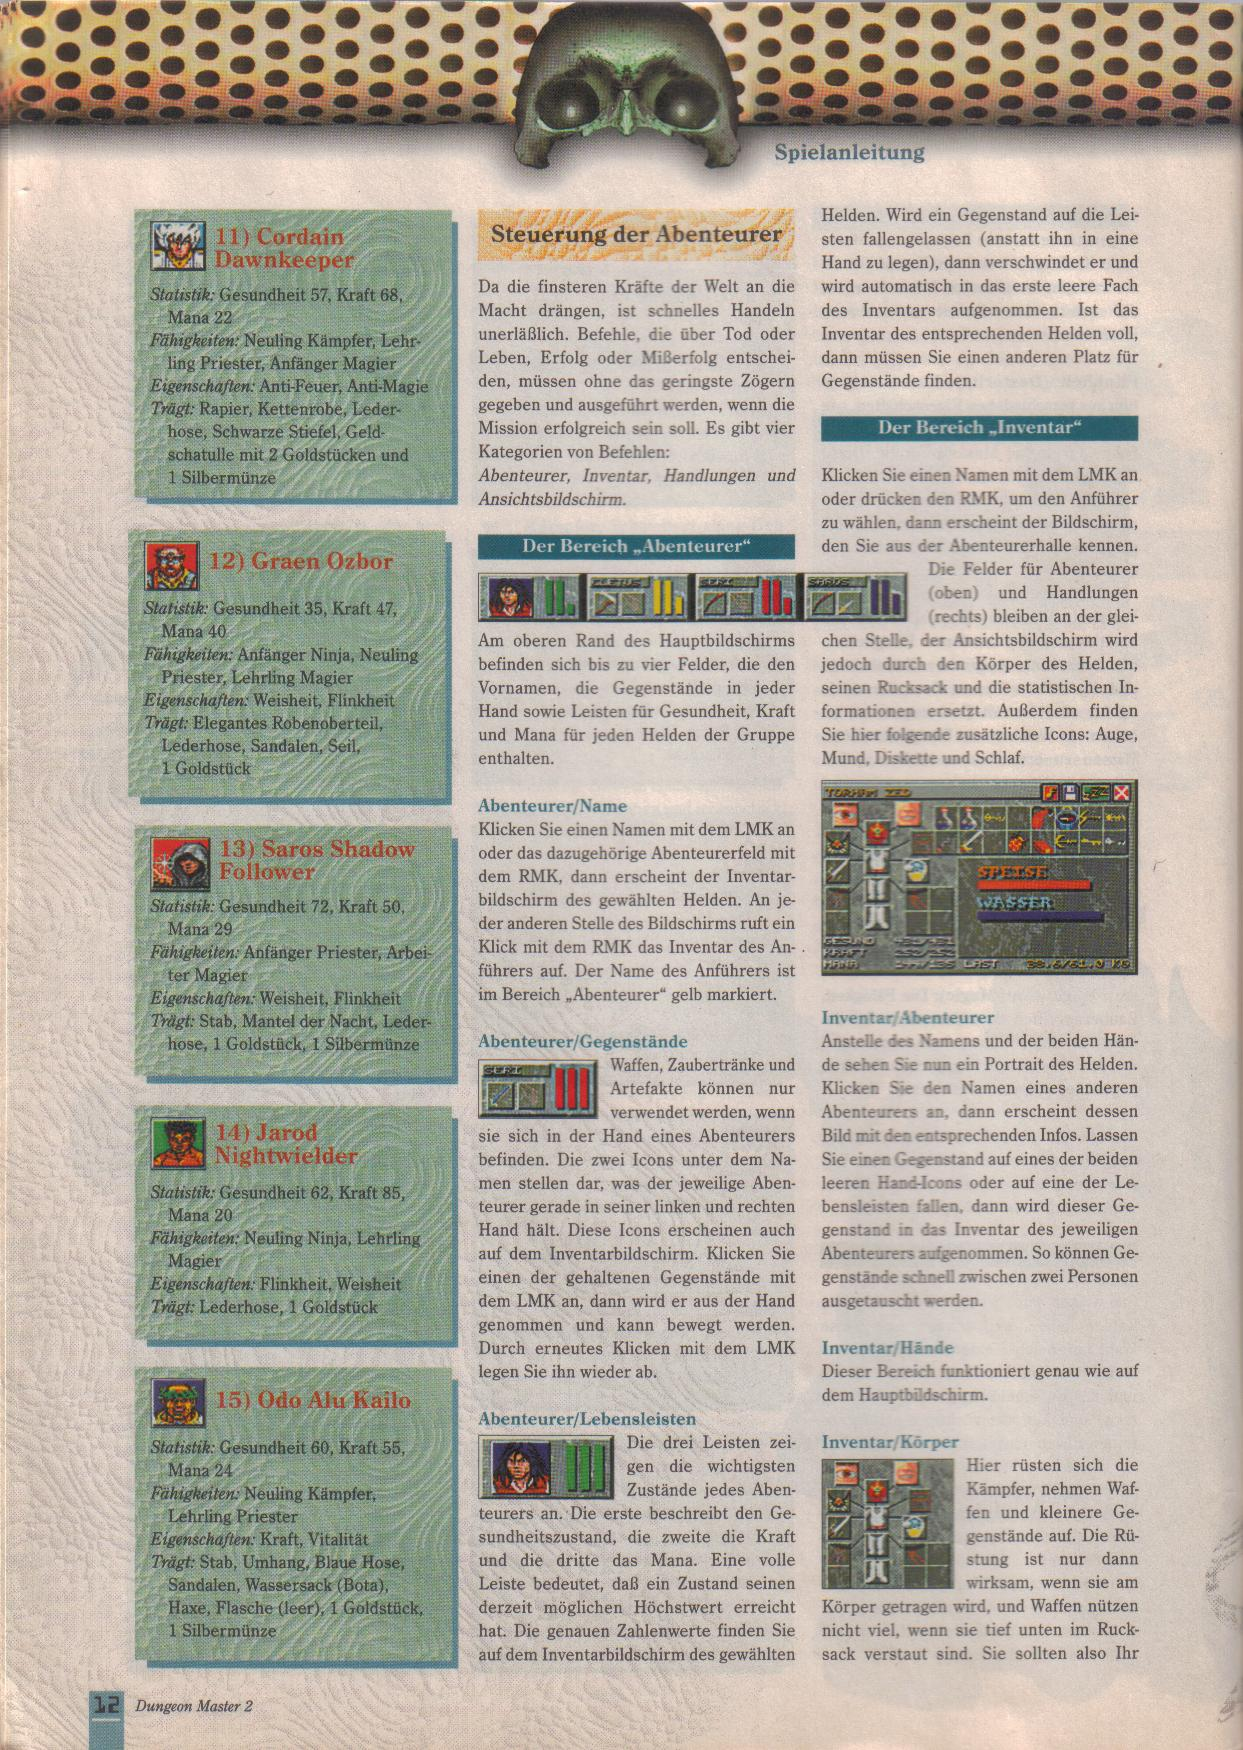 Dungeon Master II for PC (German, Best Seller Games) Page 12